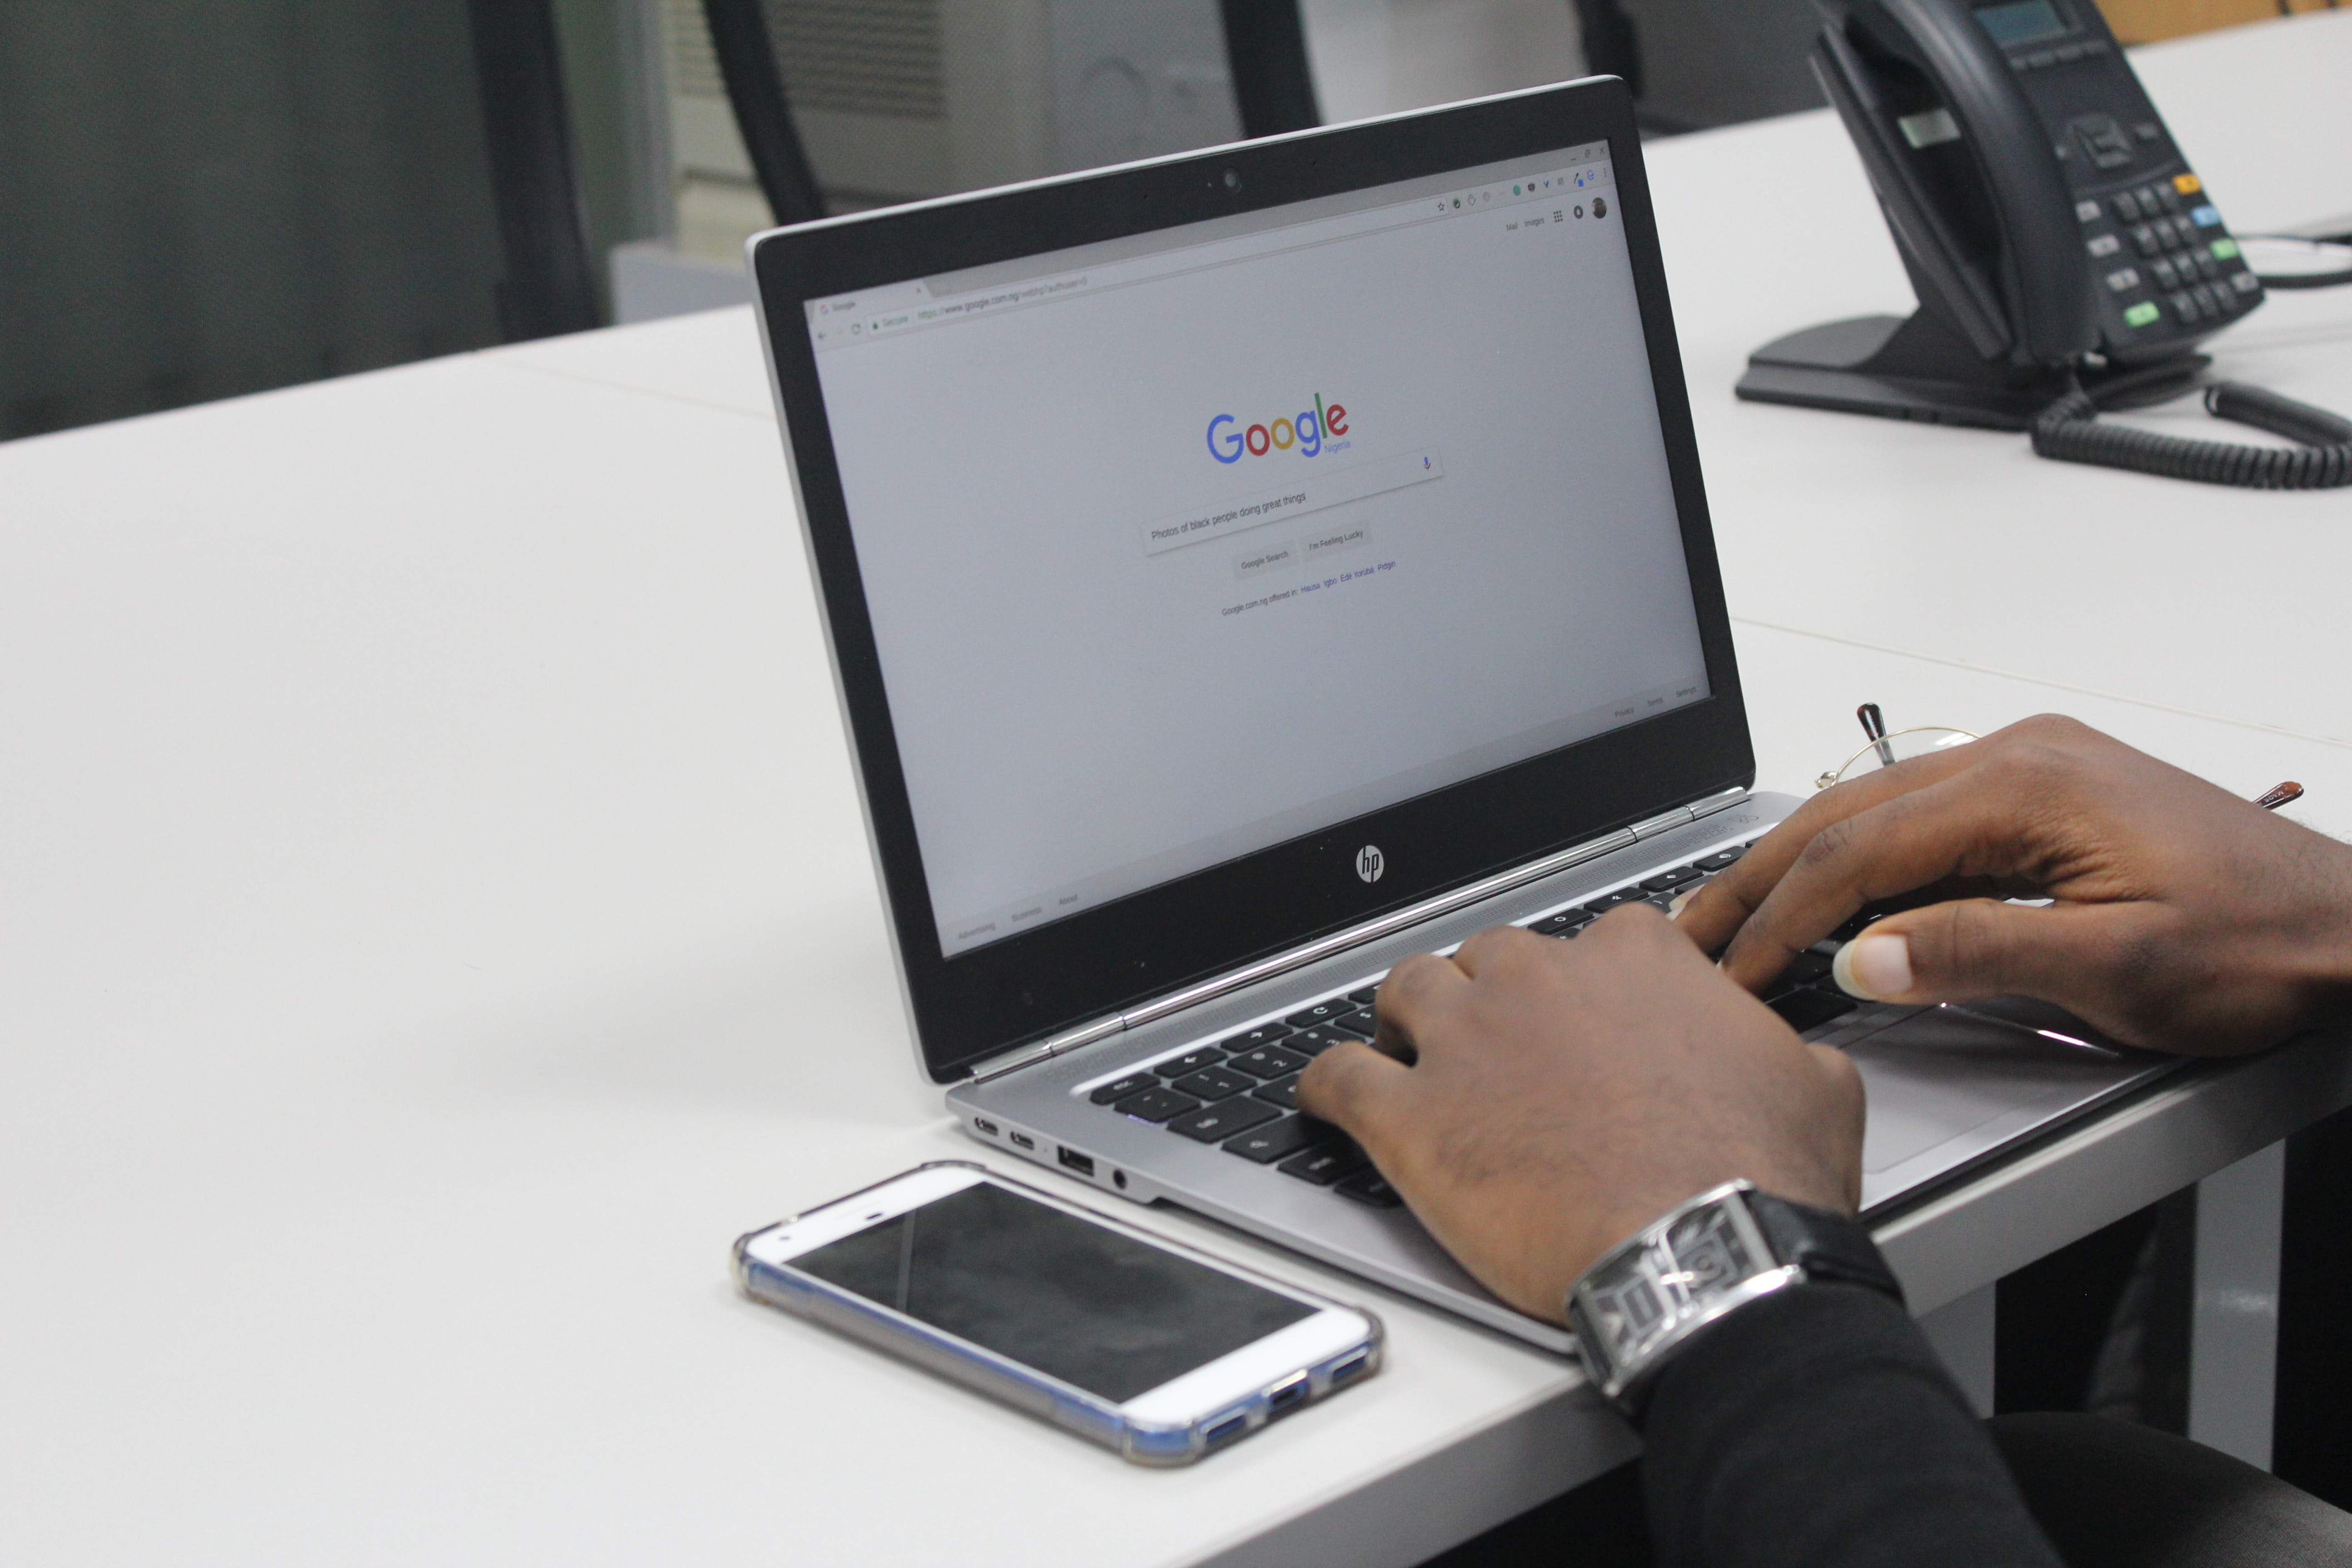 Person typing on Google.